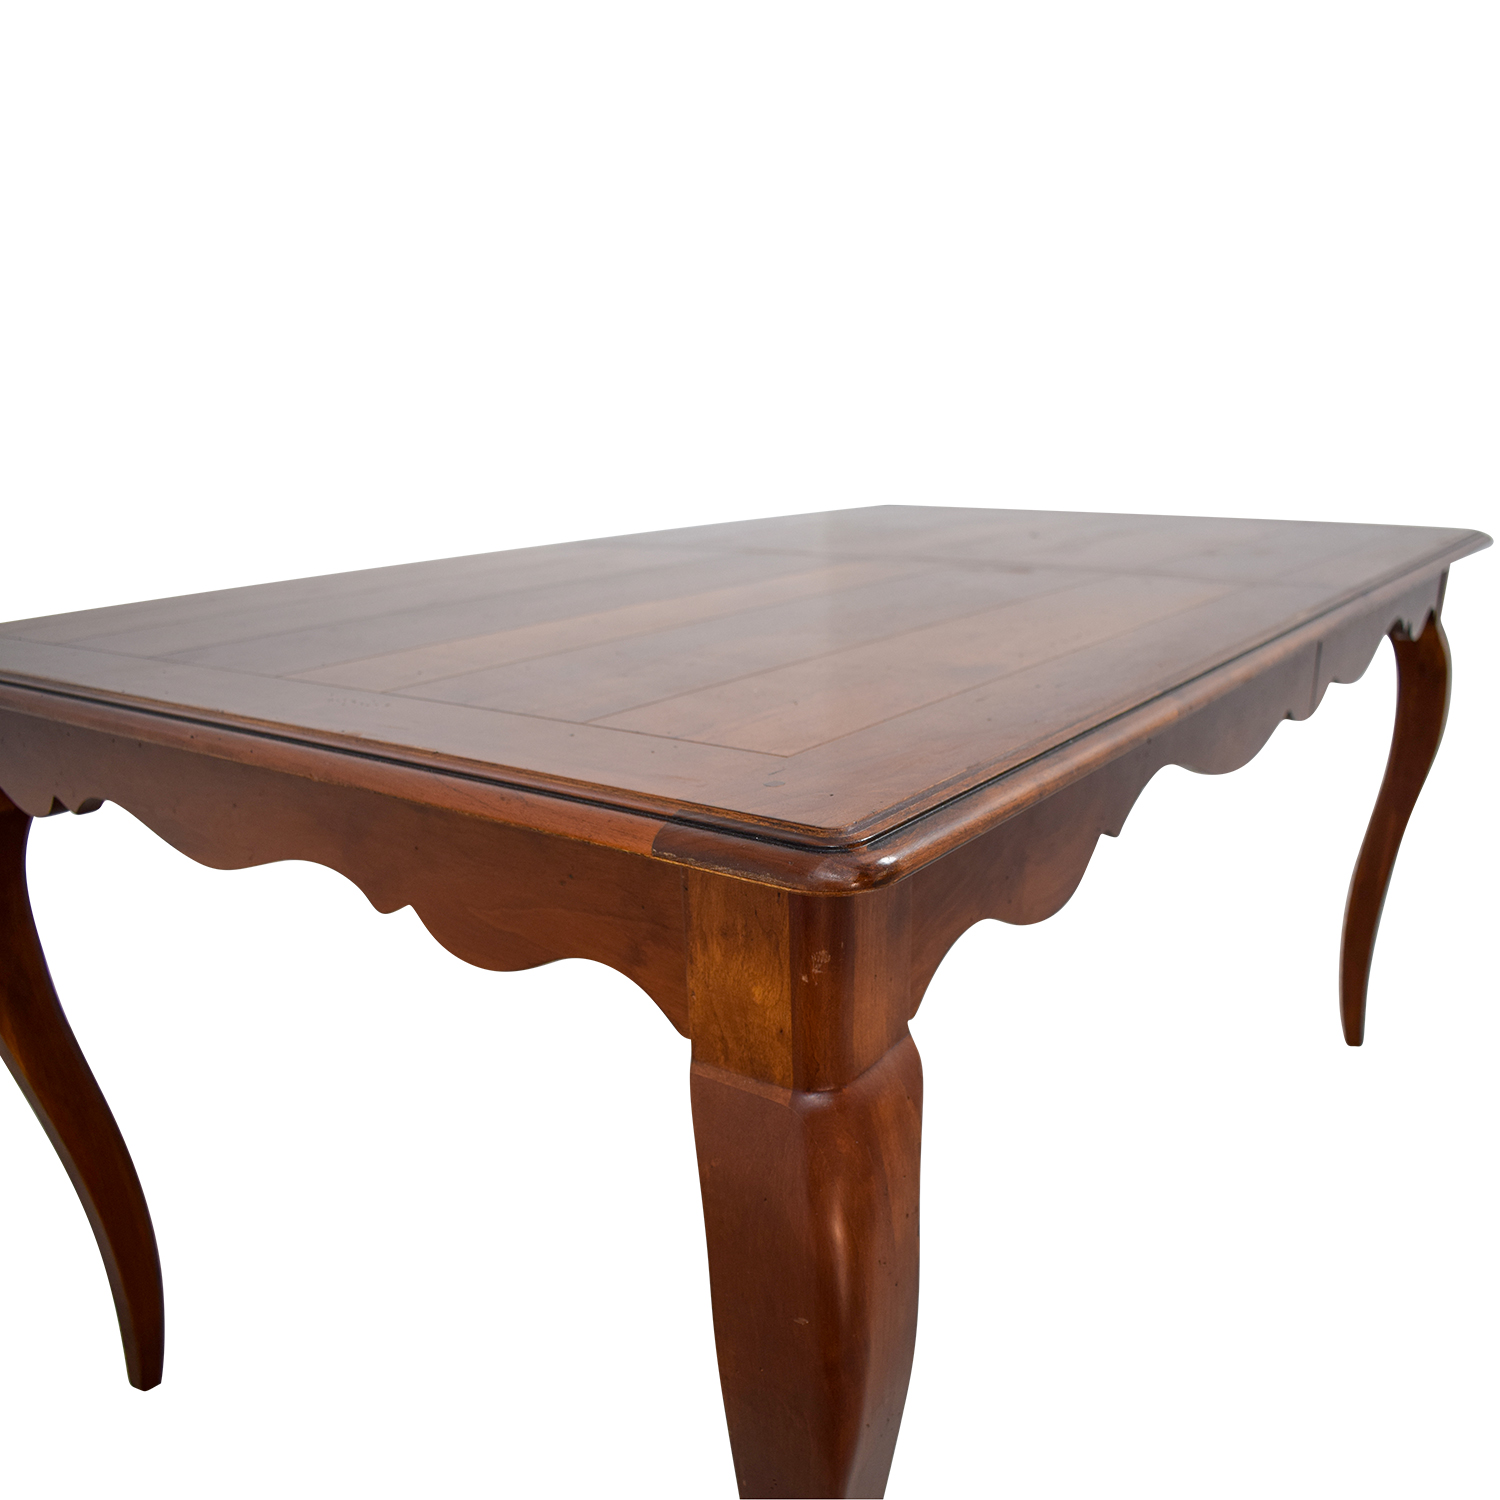 Ethan Allen Ethan Allen Juliette Wood Dovetailed Dining Table price